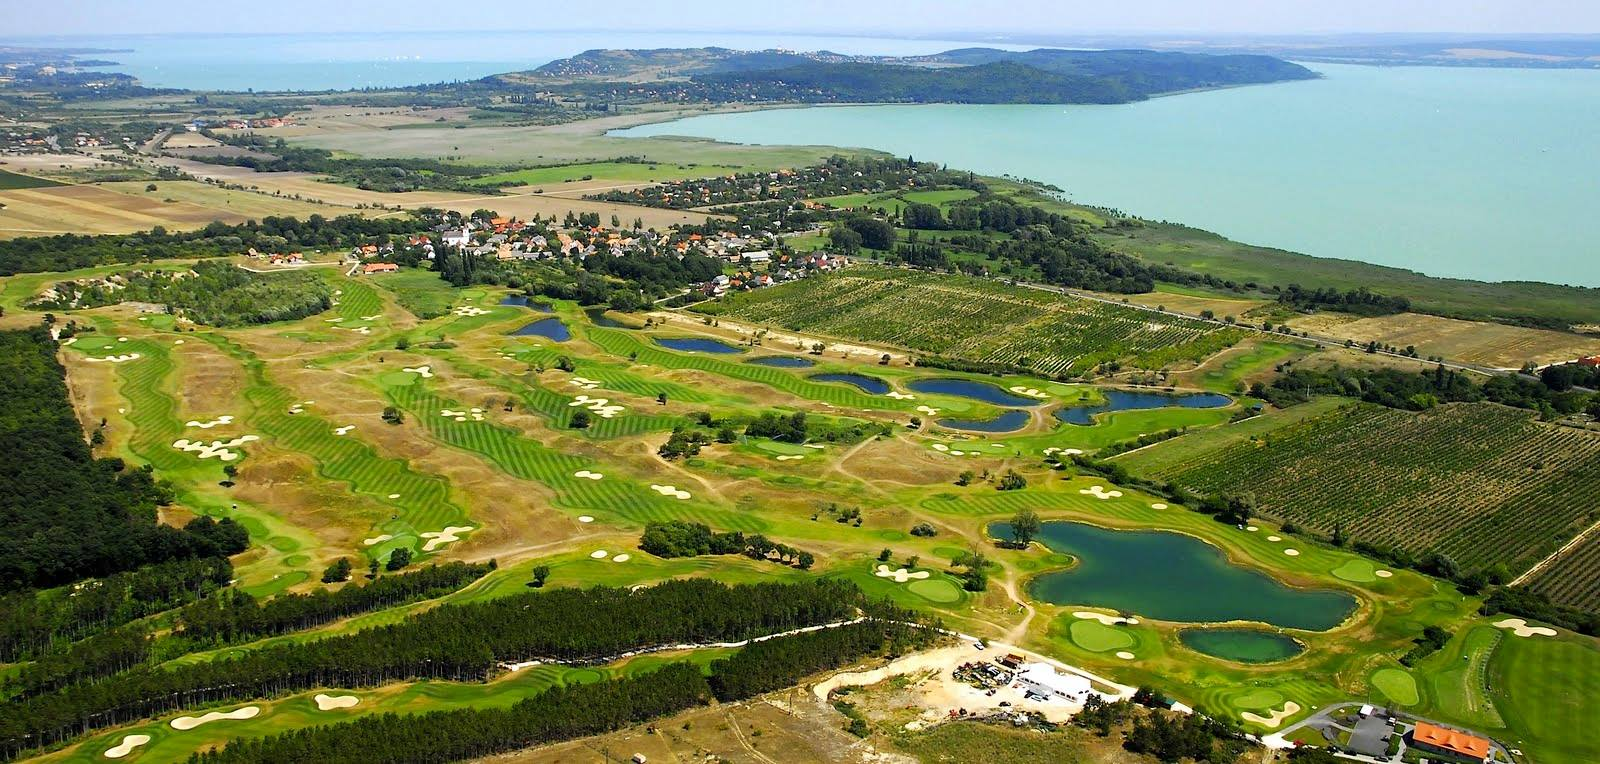 Overview of golf course named Royal Balaton Golf and Yacht Club